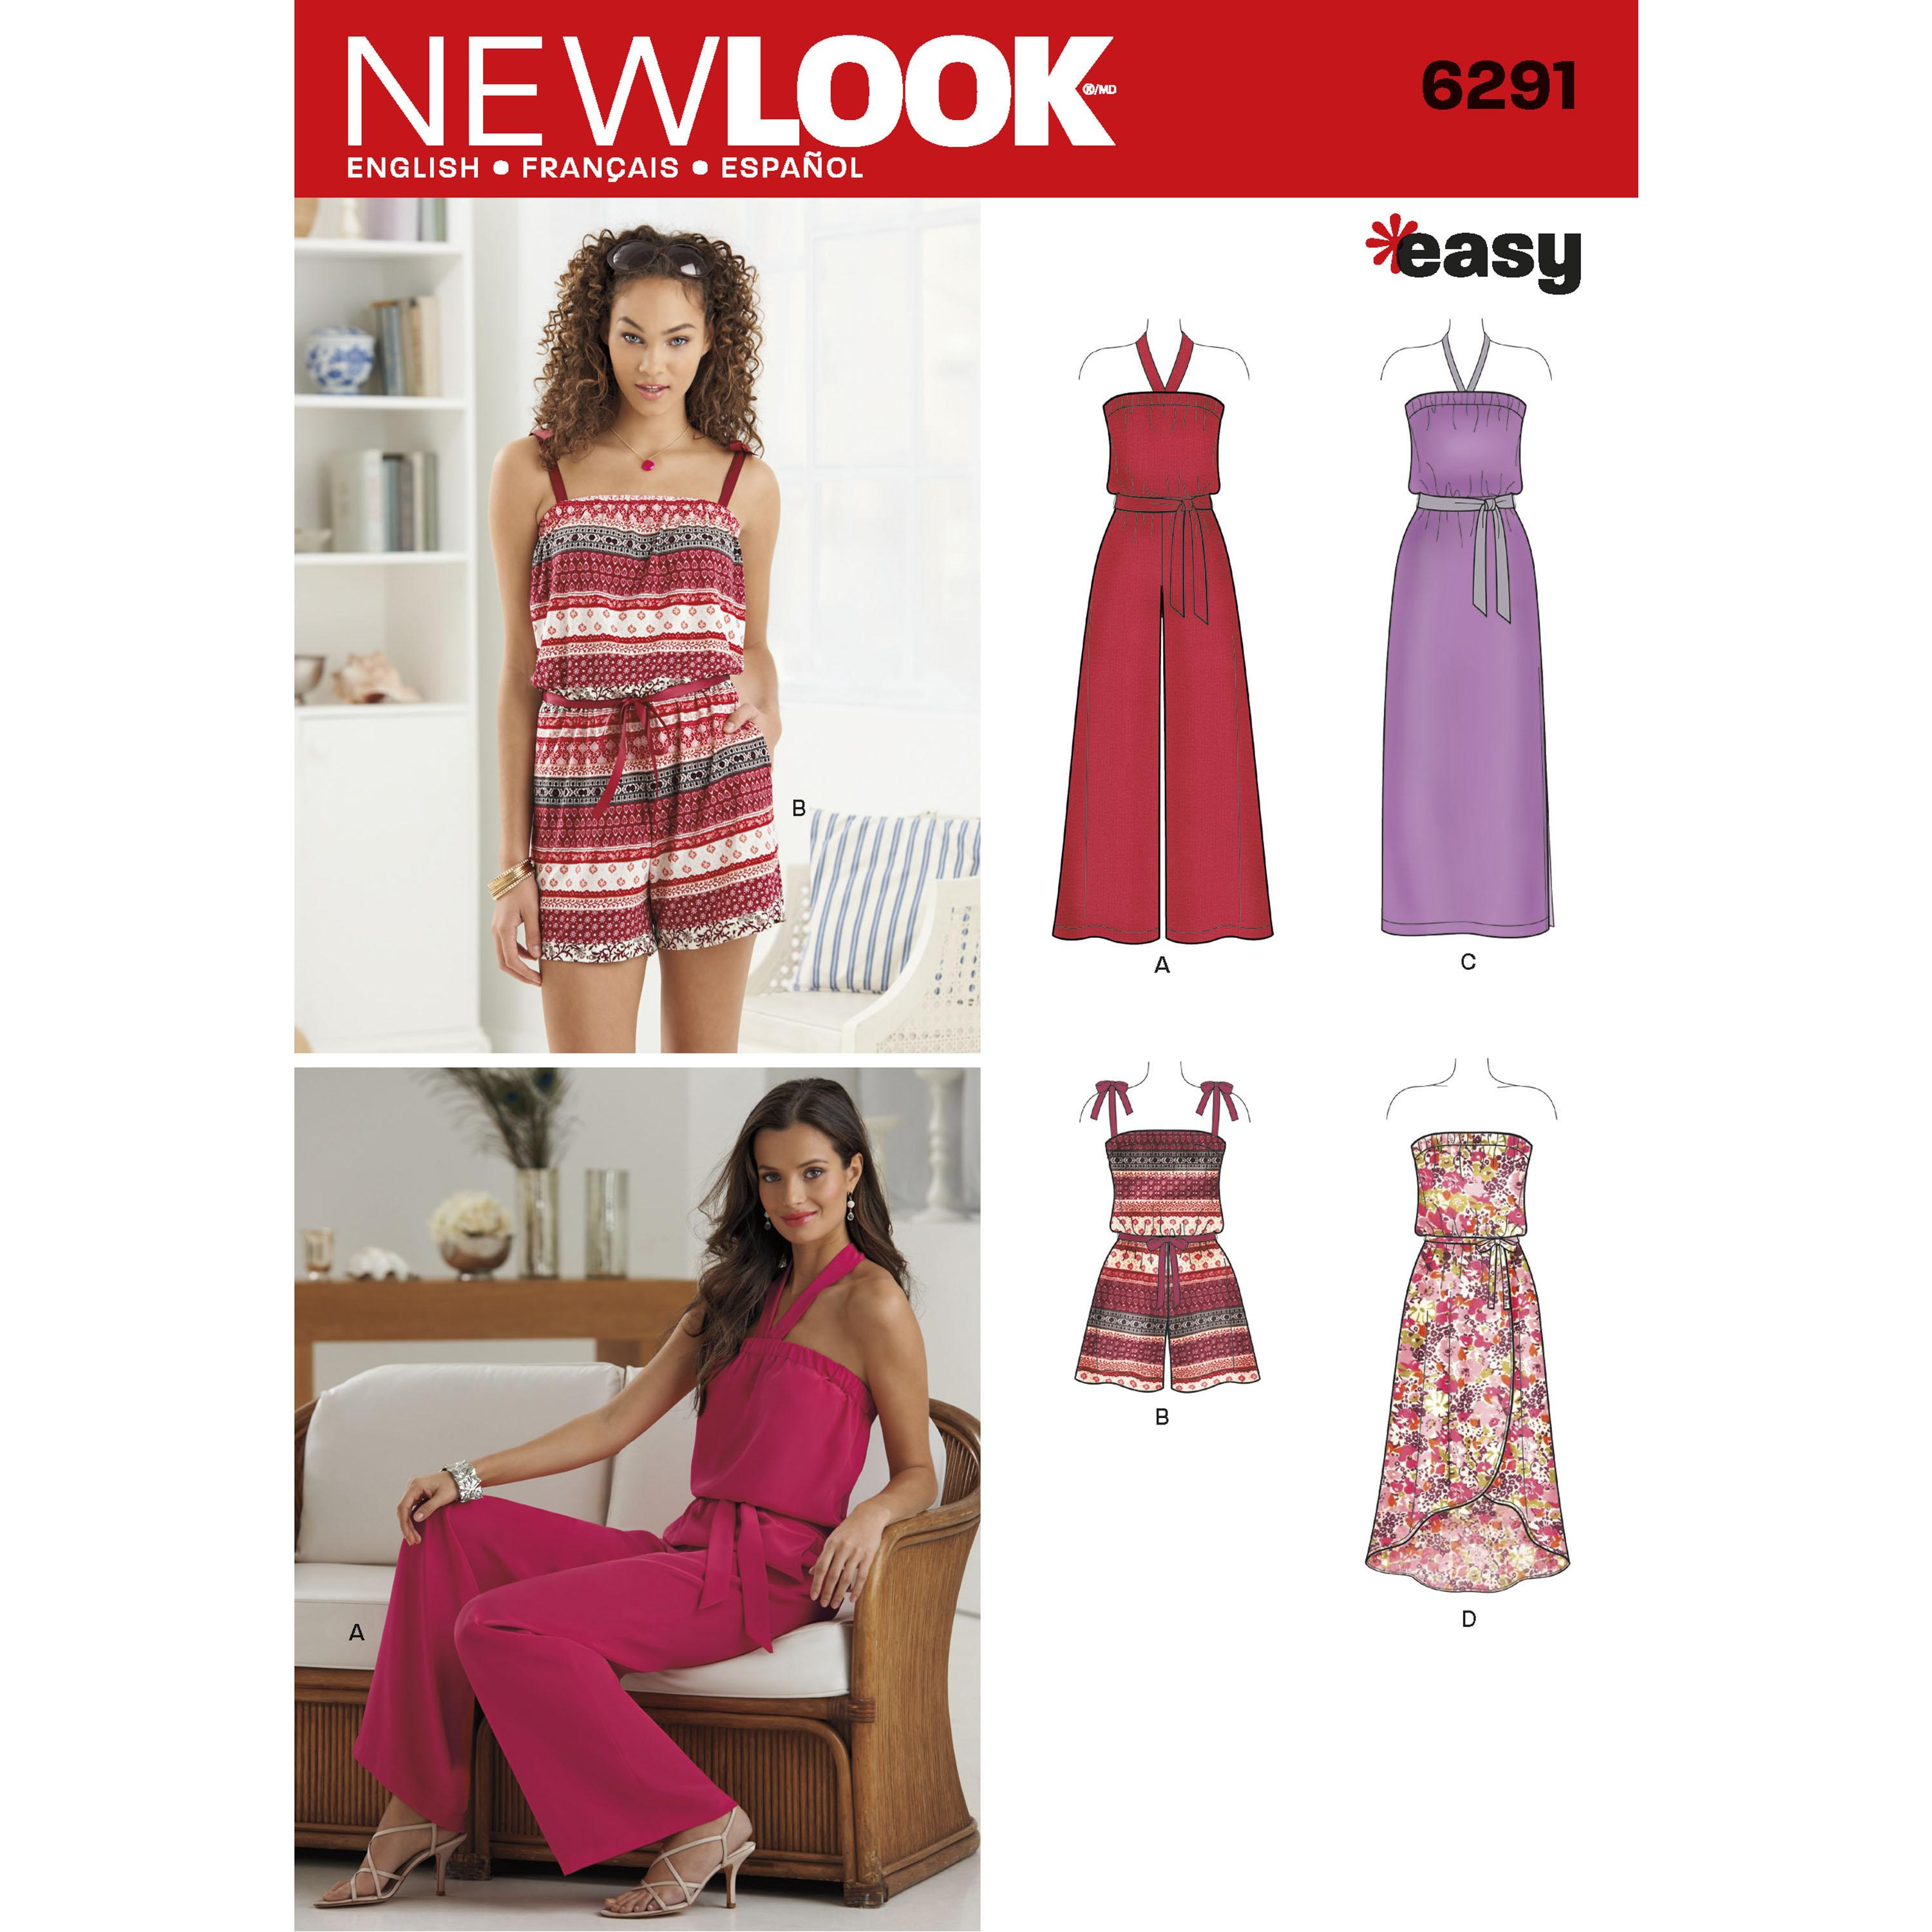 NewLook N6291 Misses' Jumpsuit & Dress Each in Two Lengths